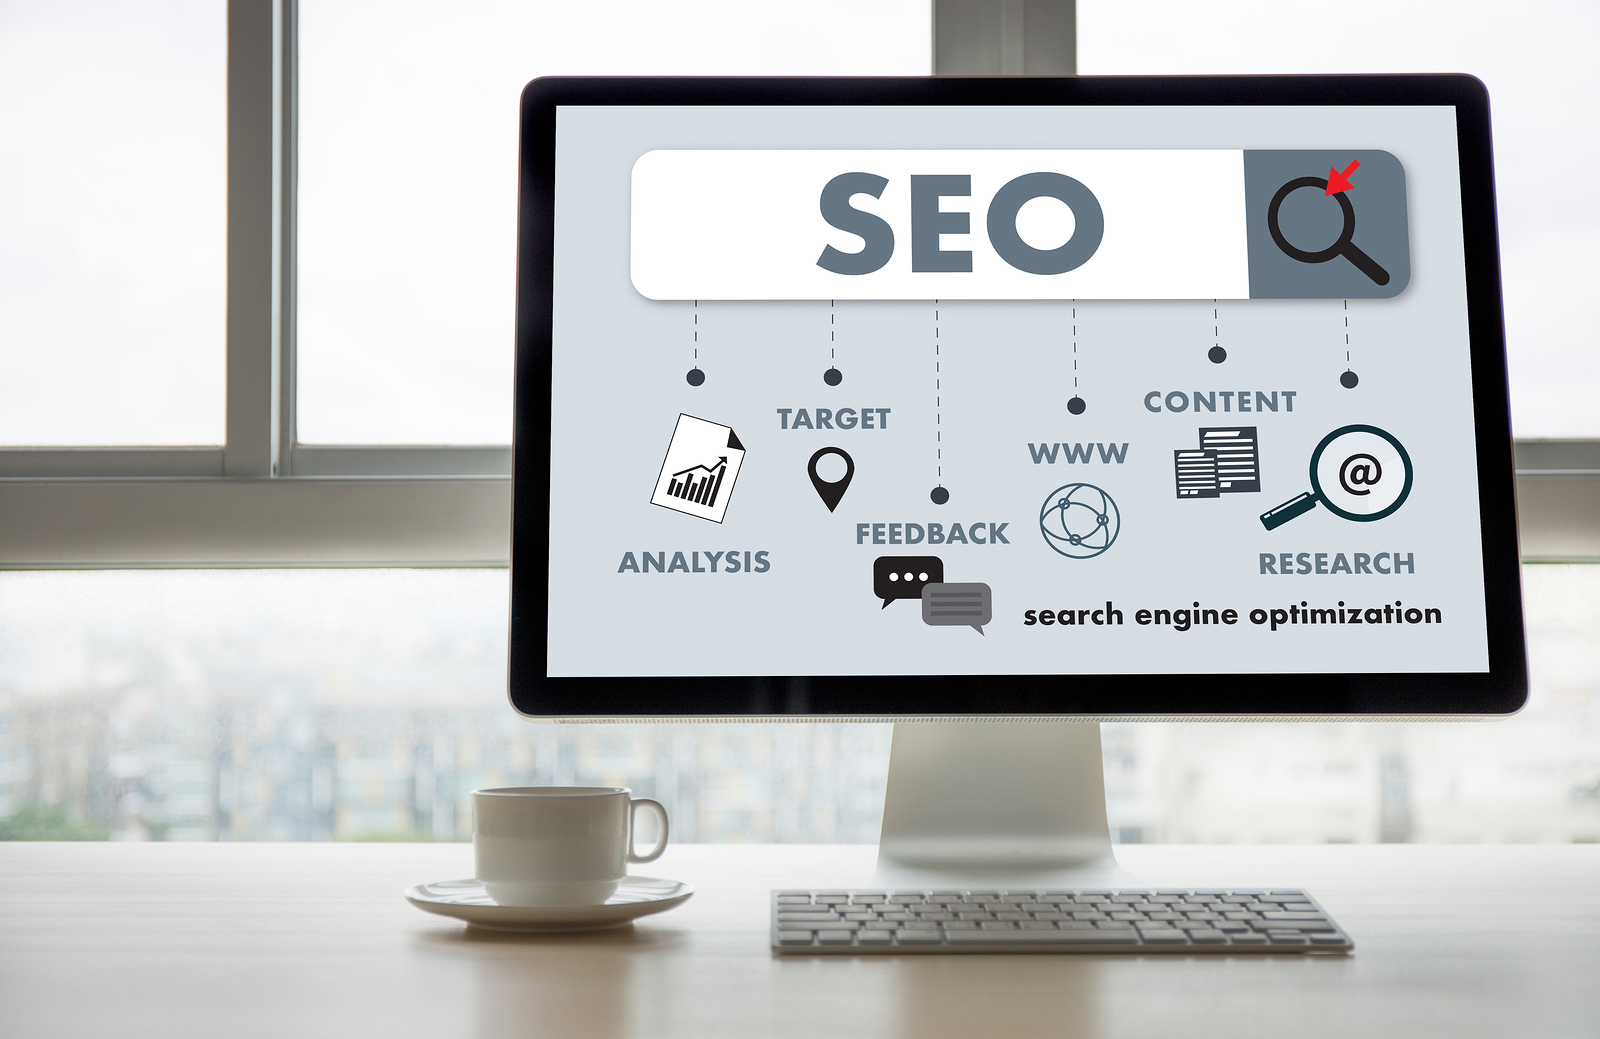 Best SEO Company Melbourne helps you in getting more traffic and business